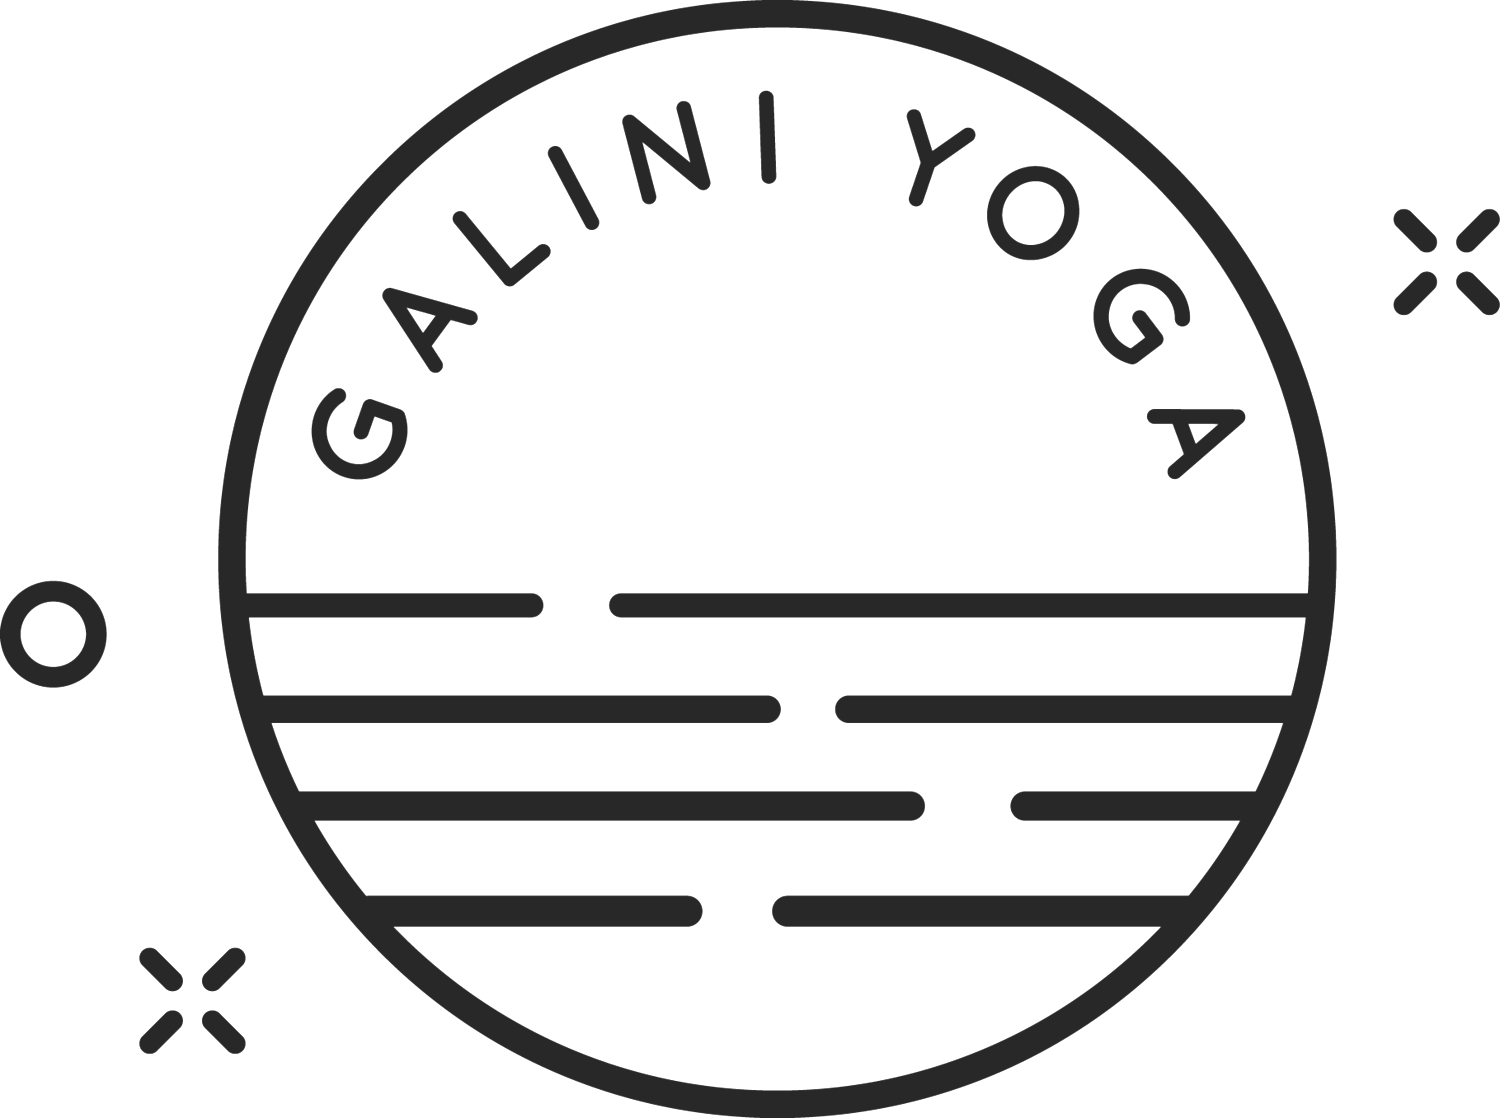 Galini Yoga - Workshops, Trainings & Events in Brussels